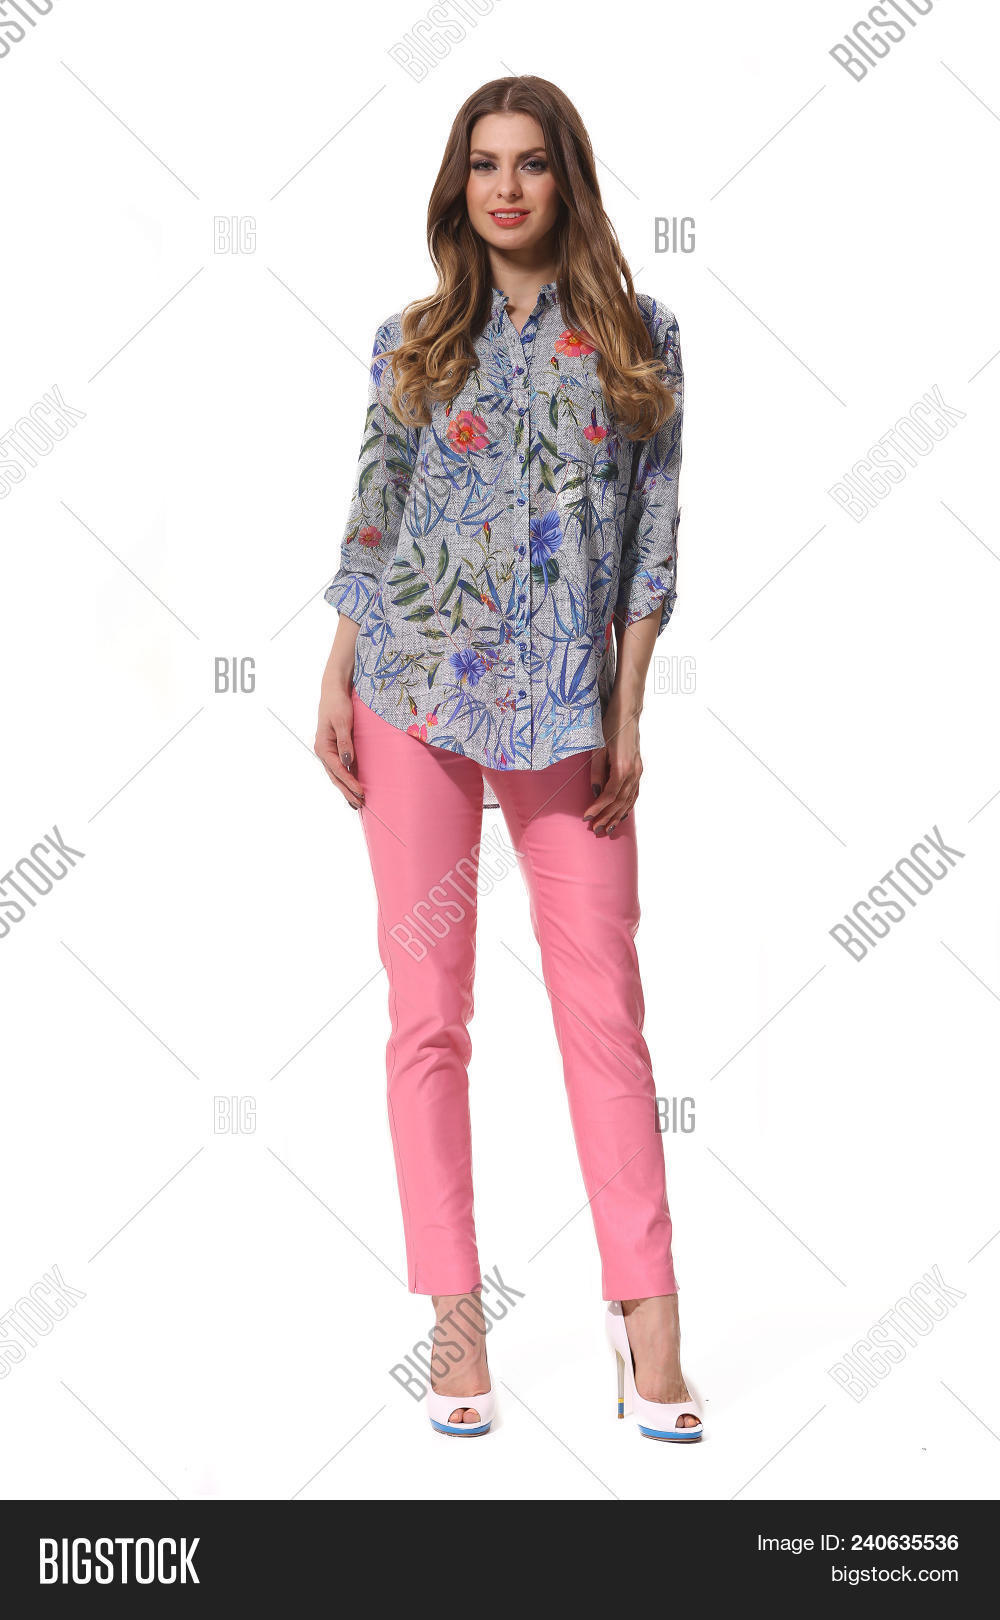 b17fdb4cc8b Young Caucasian Business Woman Executive Posing In Summer Casual Print  Summer Blouse And Jeans High